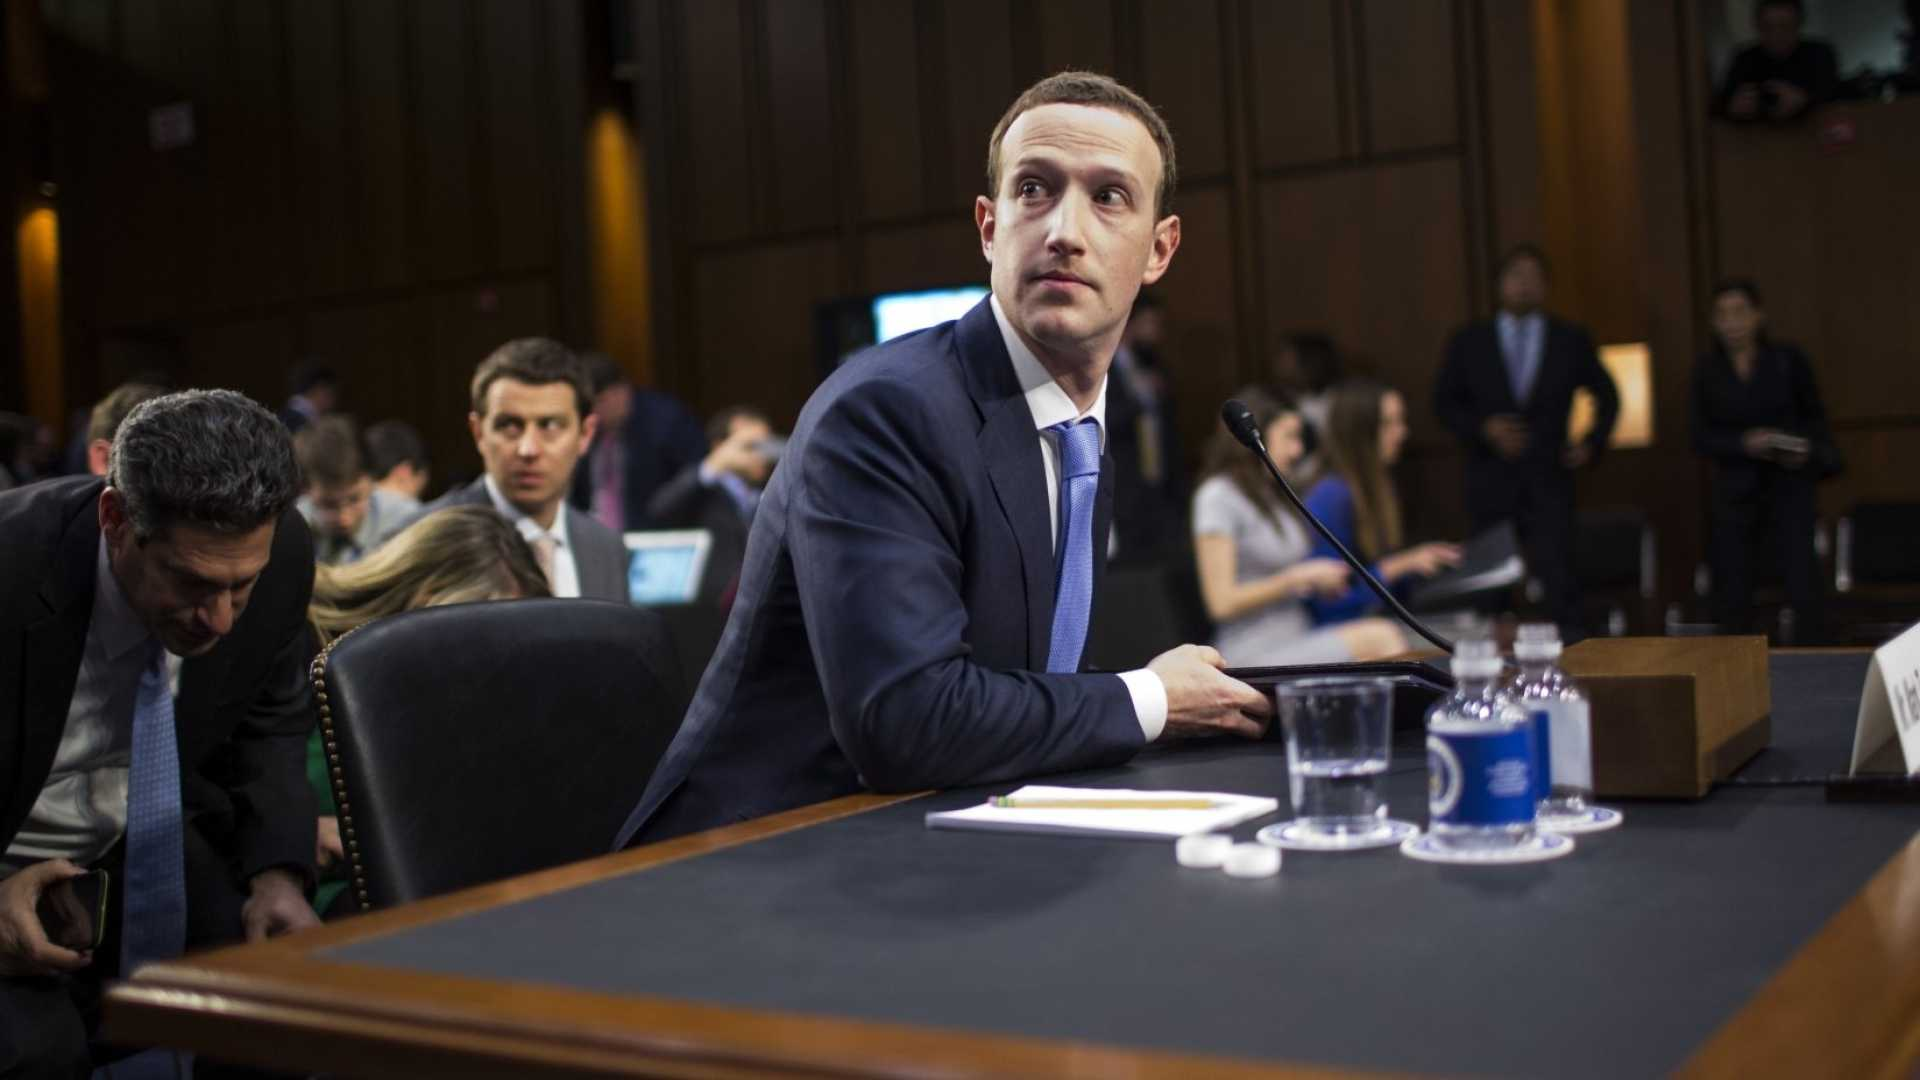 The Most Important Lesson for Business Owners from Mark Zuckerberg's Testimony